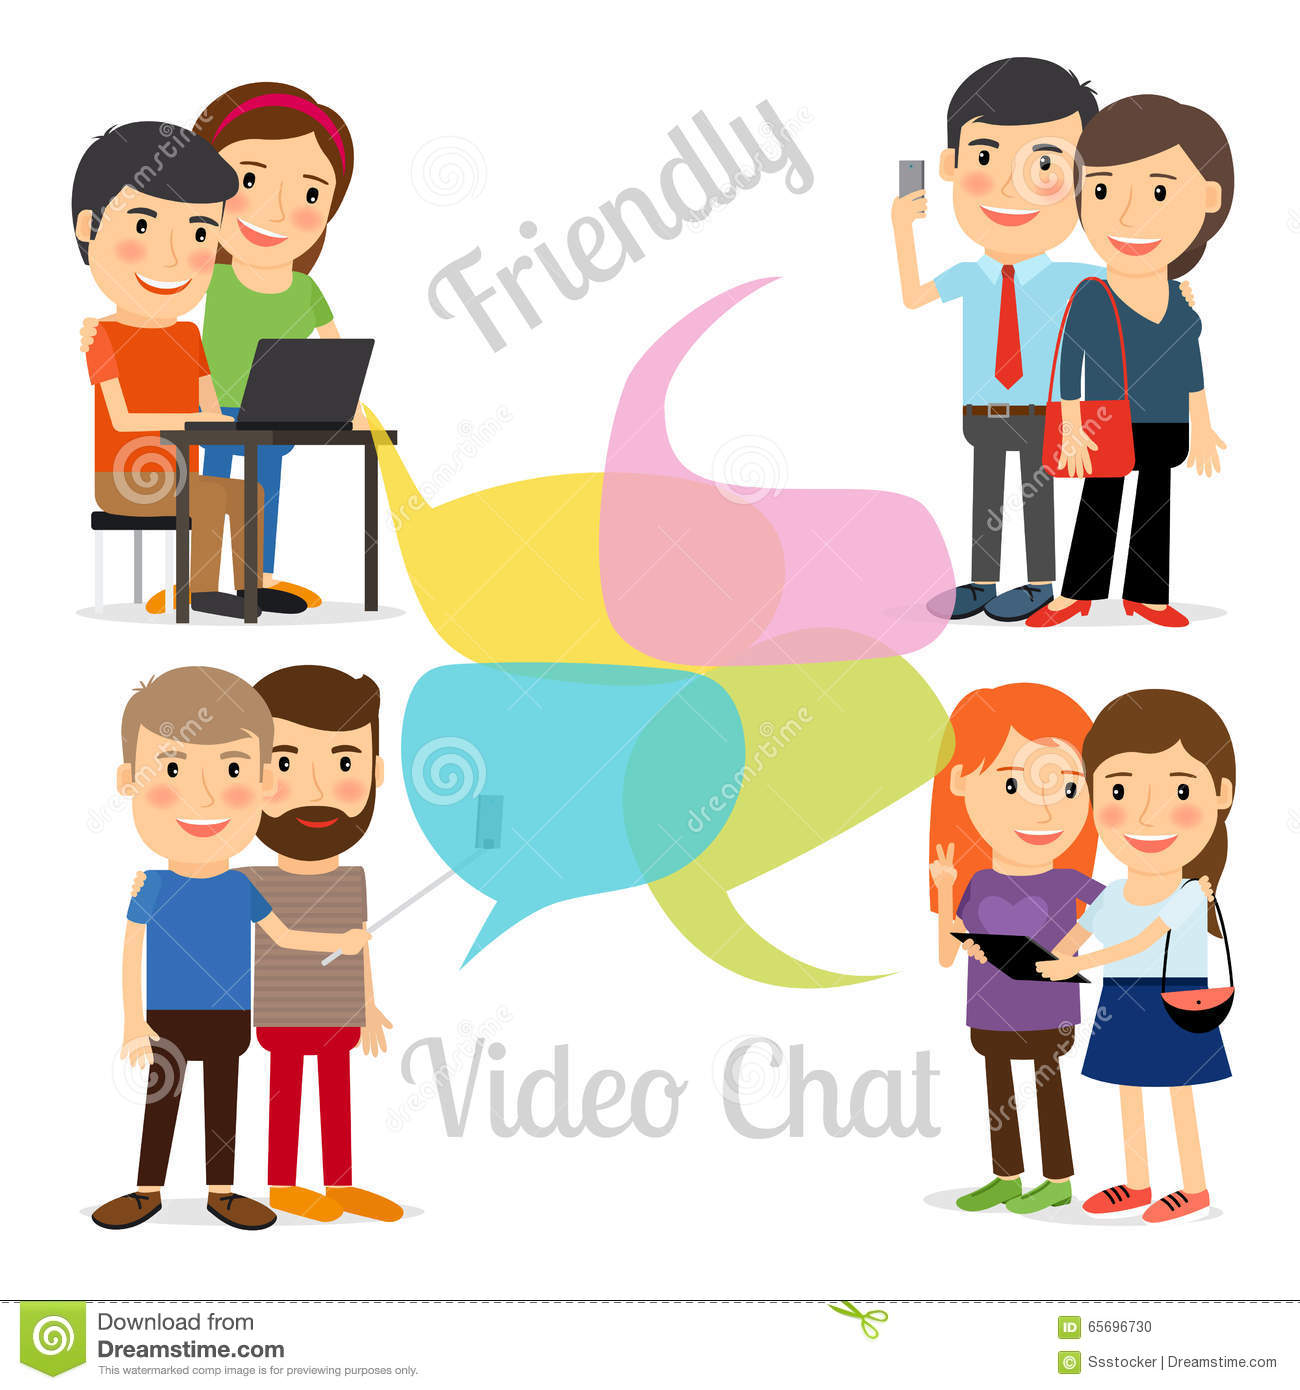 meet people online video